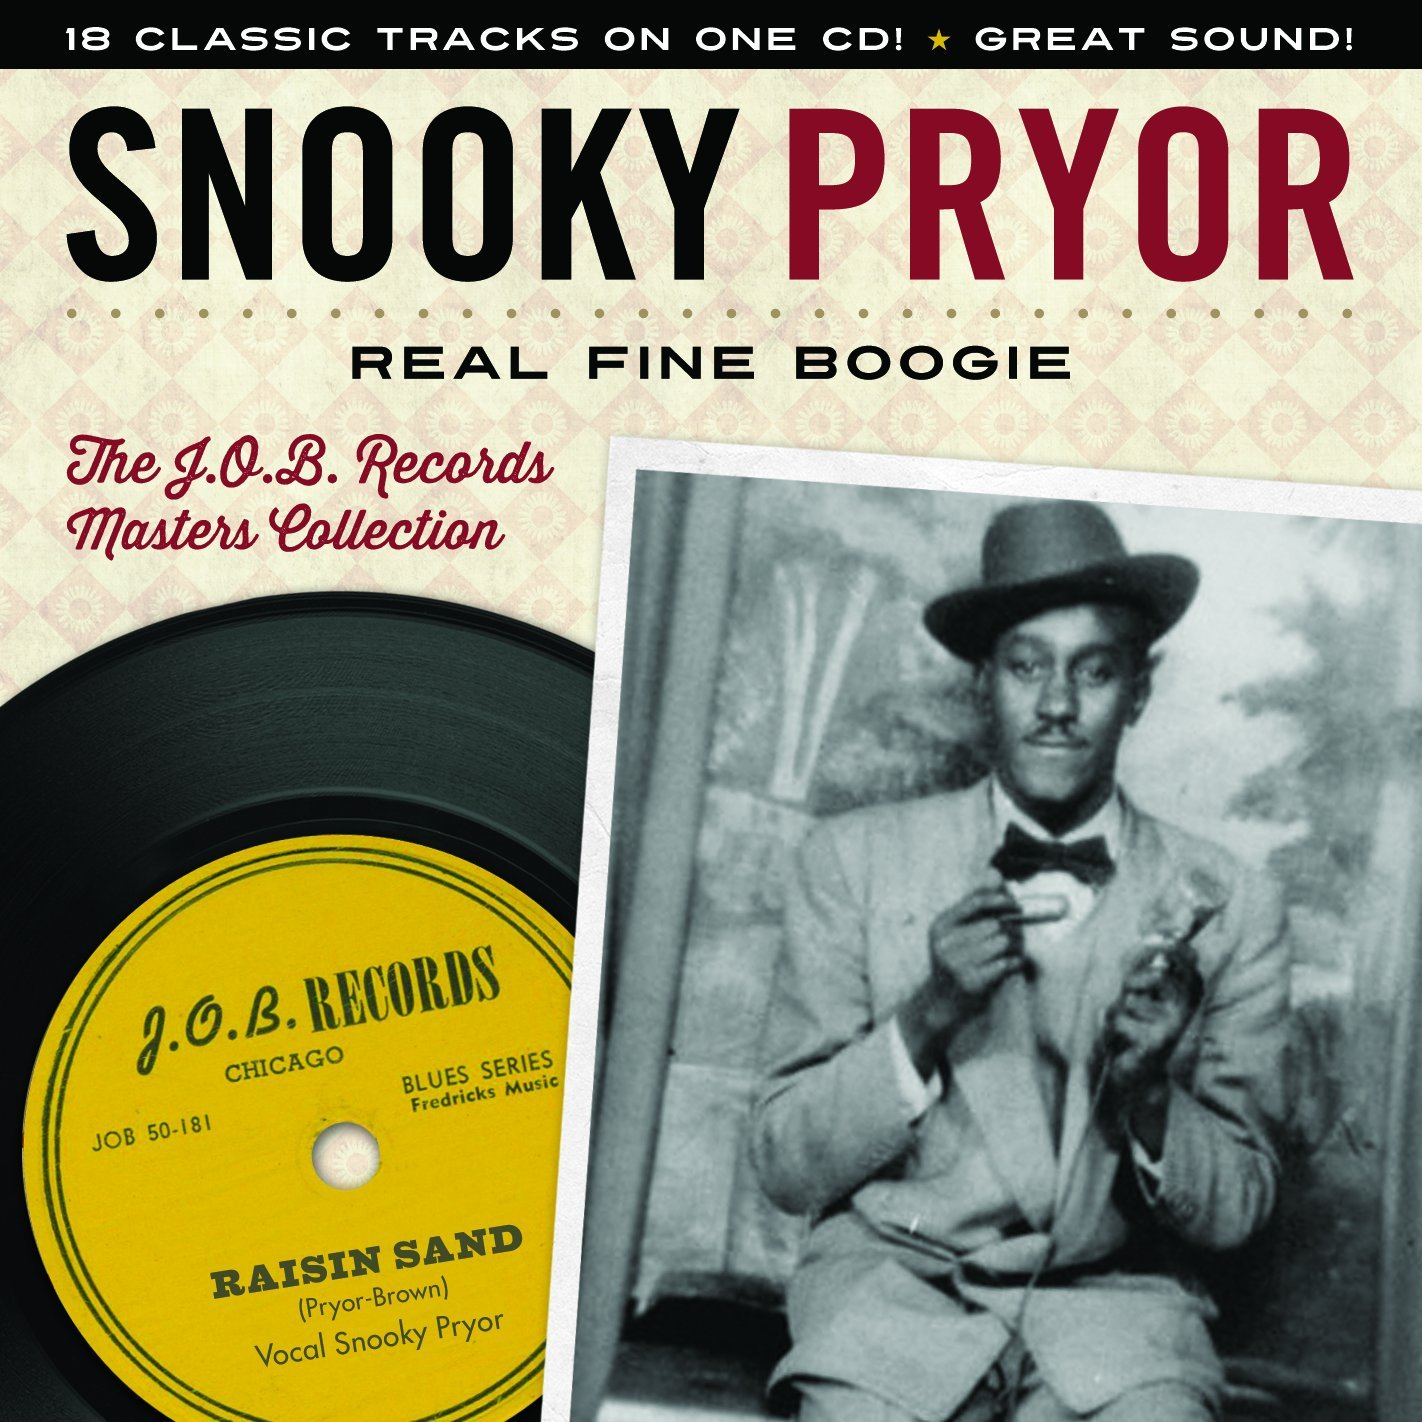 CD : Snooky Pryor - Real Fine Boogie The J.o.b. Records Masters (CD)